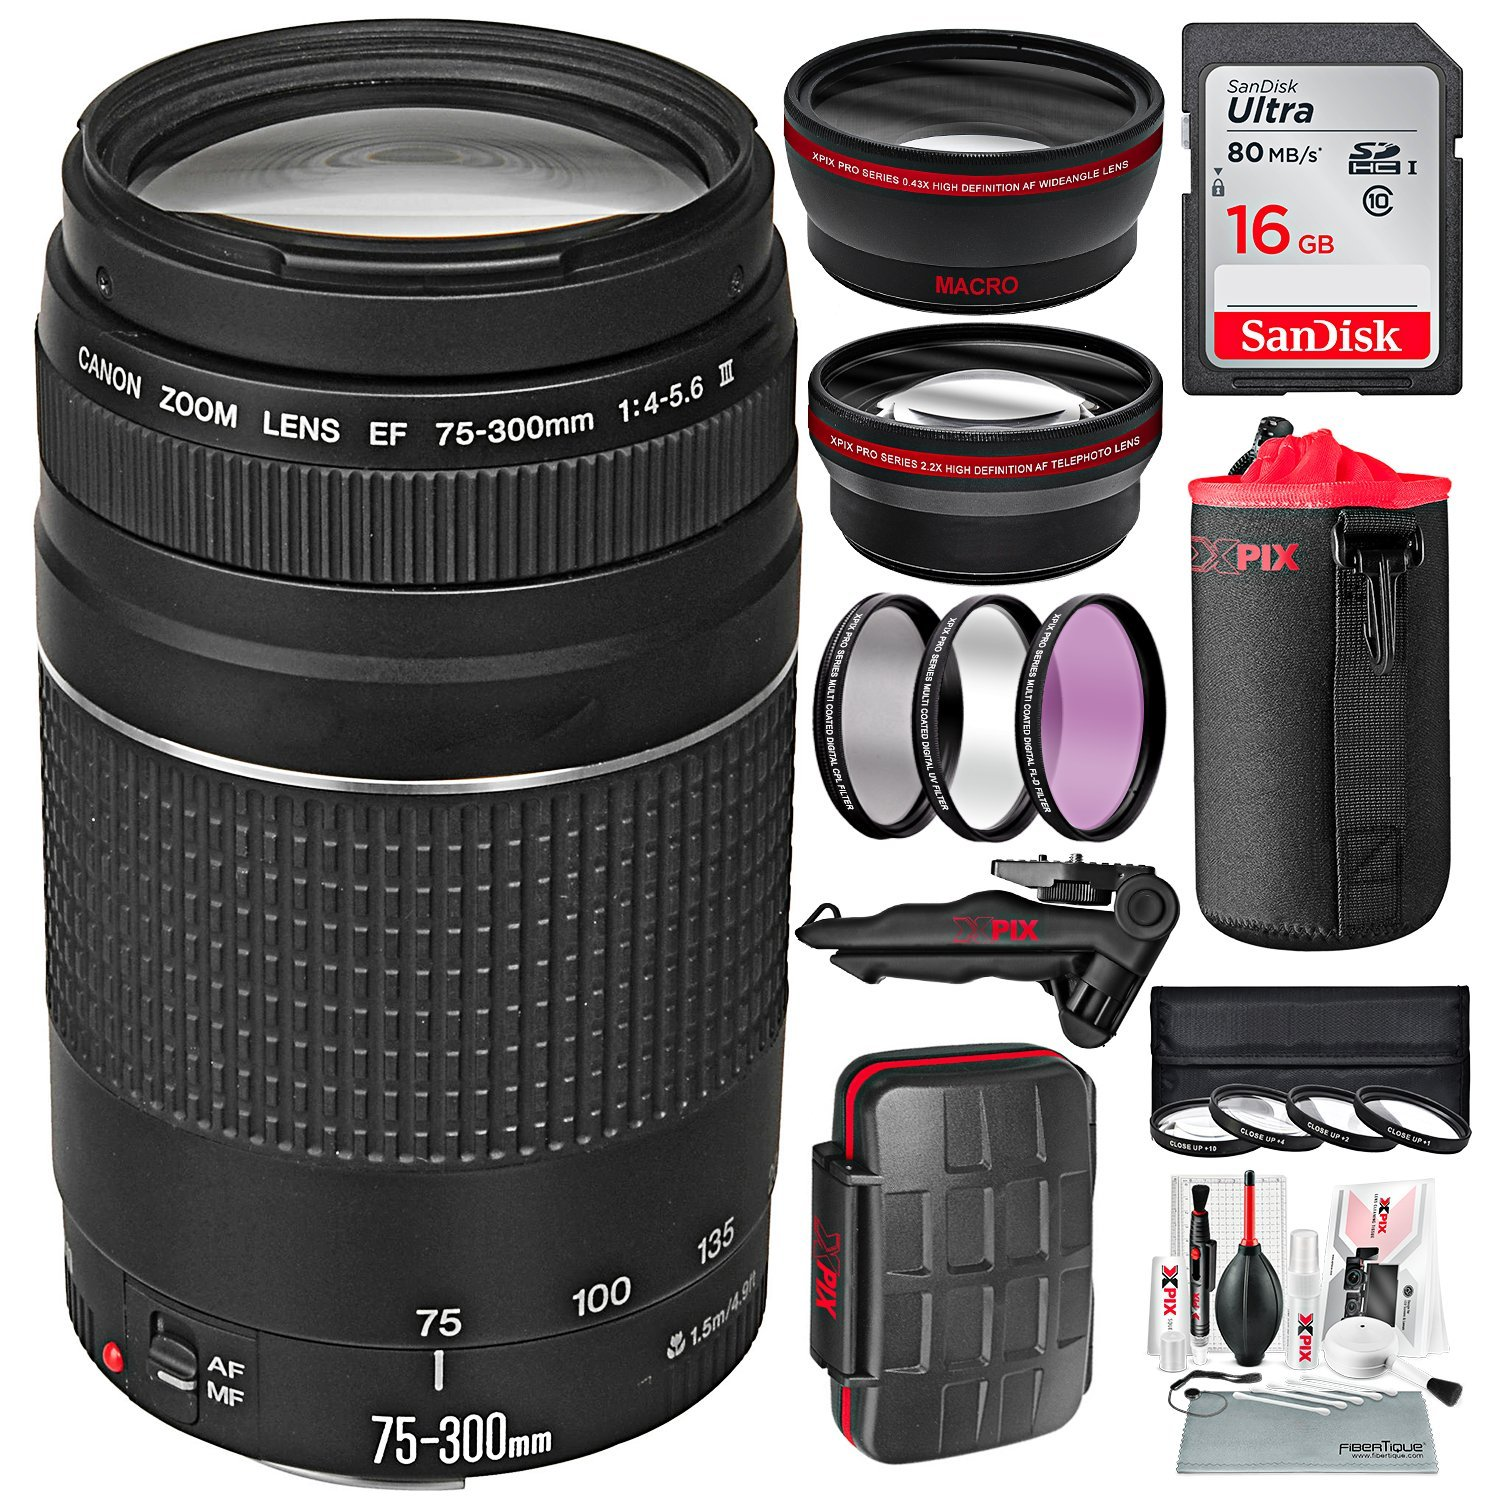 Canon EF 75-300mm f/4-5.6 III Telephoto Zoom Lens for Canon DSLR and 16GB + Professional Tripod + Wide-Angle Lens + Deluxe Accessory Bundle